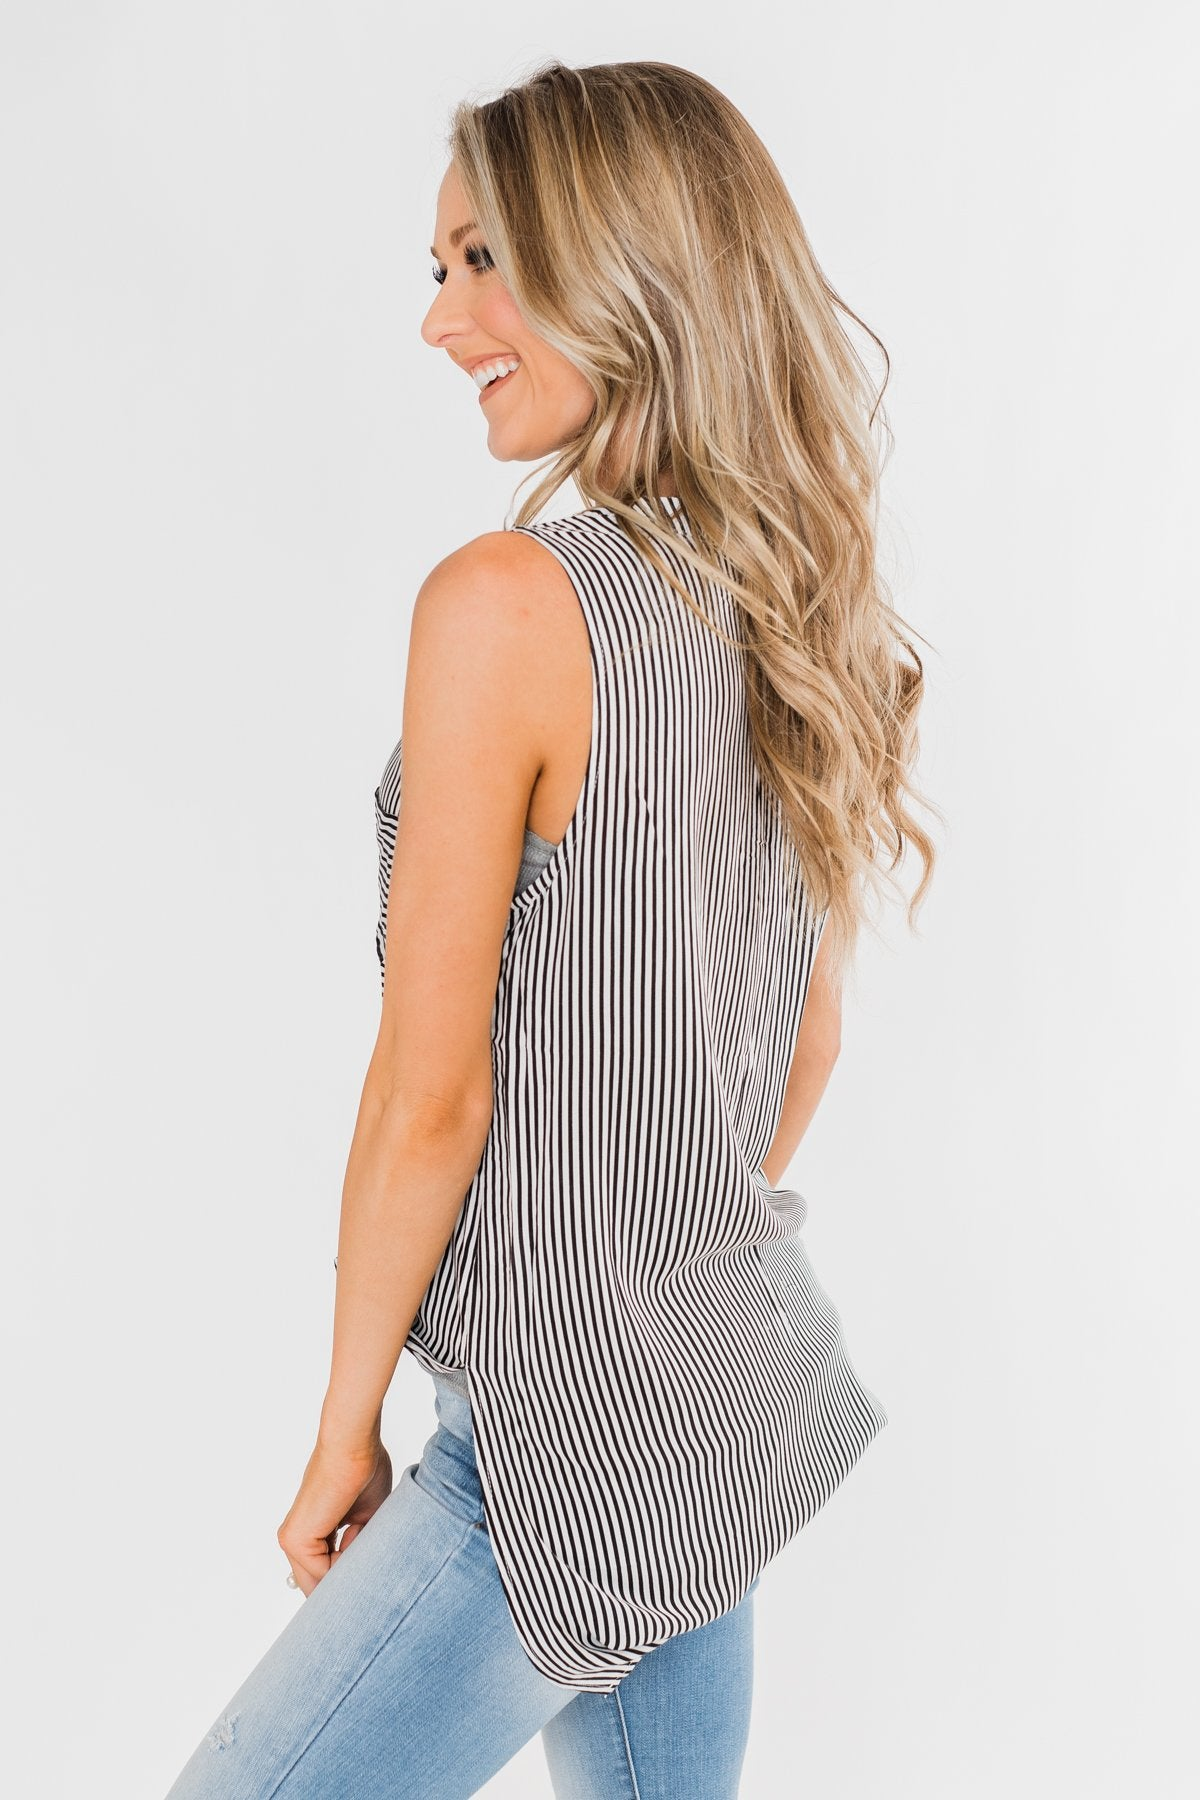 When You Smile Striped Tank Top- Black & White